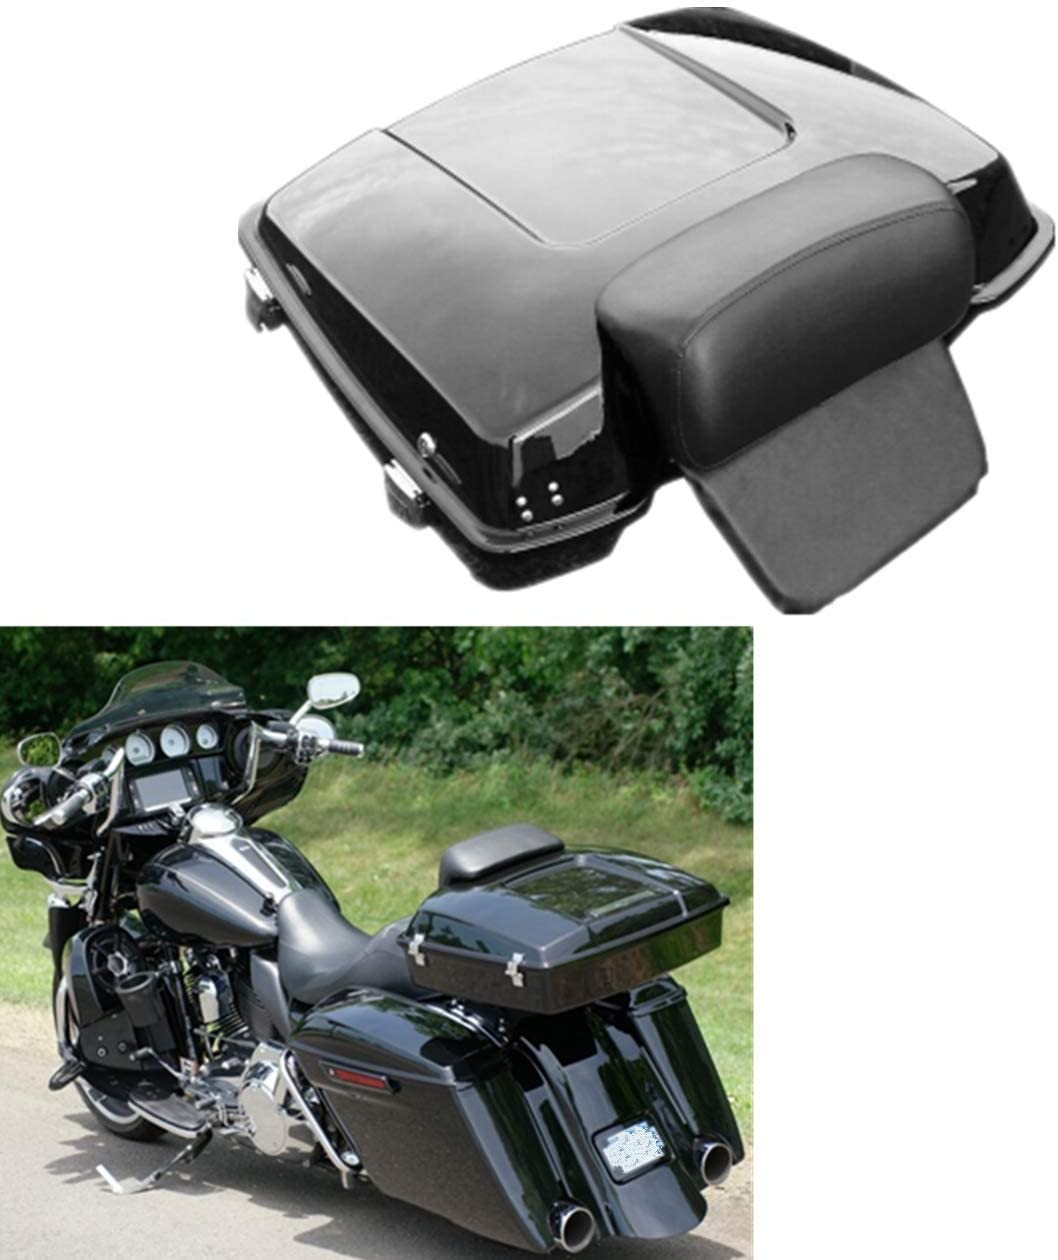 TCT-MT Razor Tour Pack Pak New life Trunk w 1 2021new shipping free Backrest Pad Harley Fit For